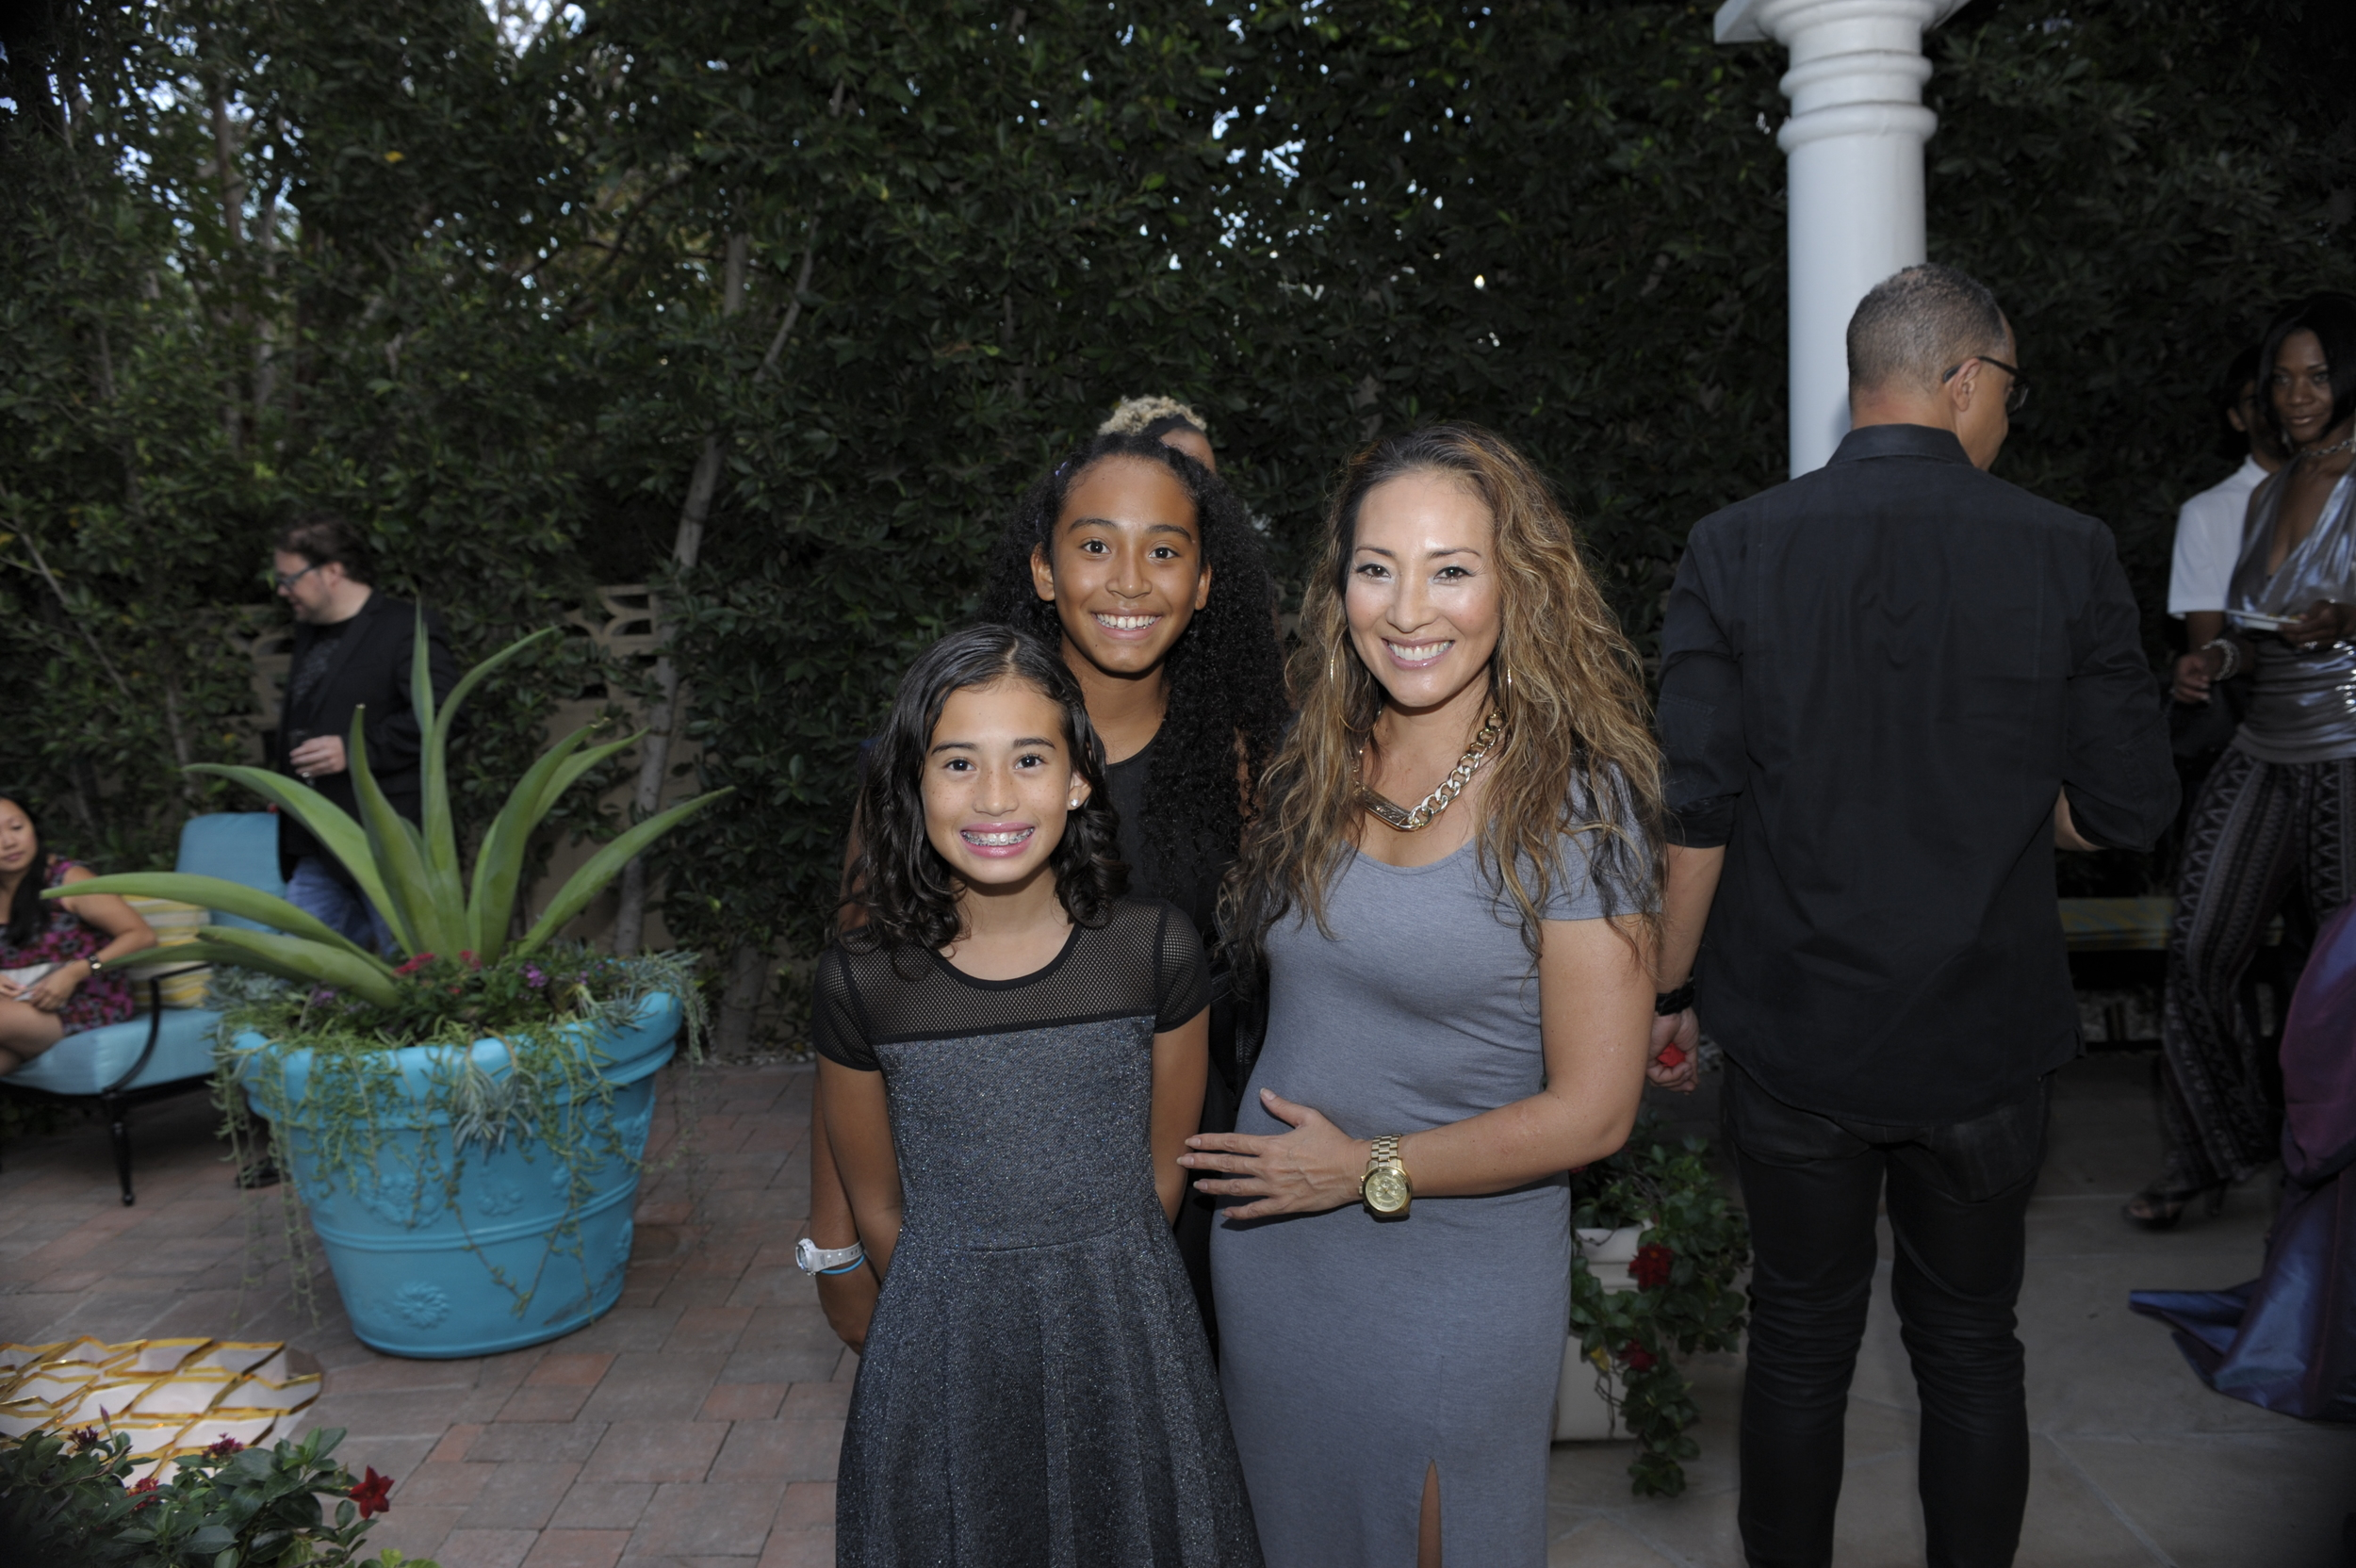 Caption: Future American President covergirl Sky with sister Raine and mother, Ami Torres. Photograph by George DeLoache